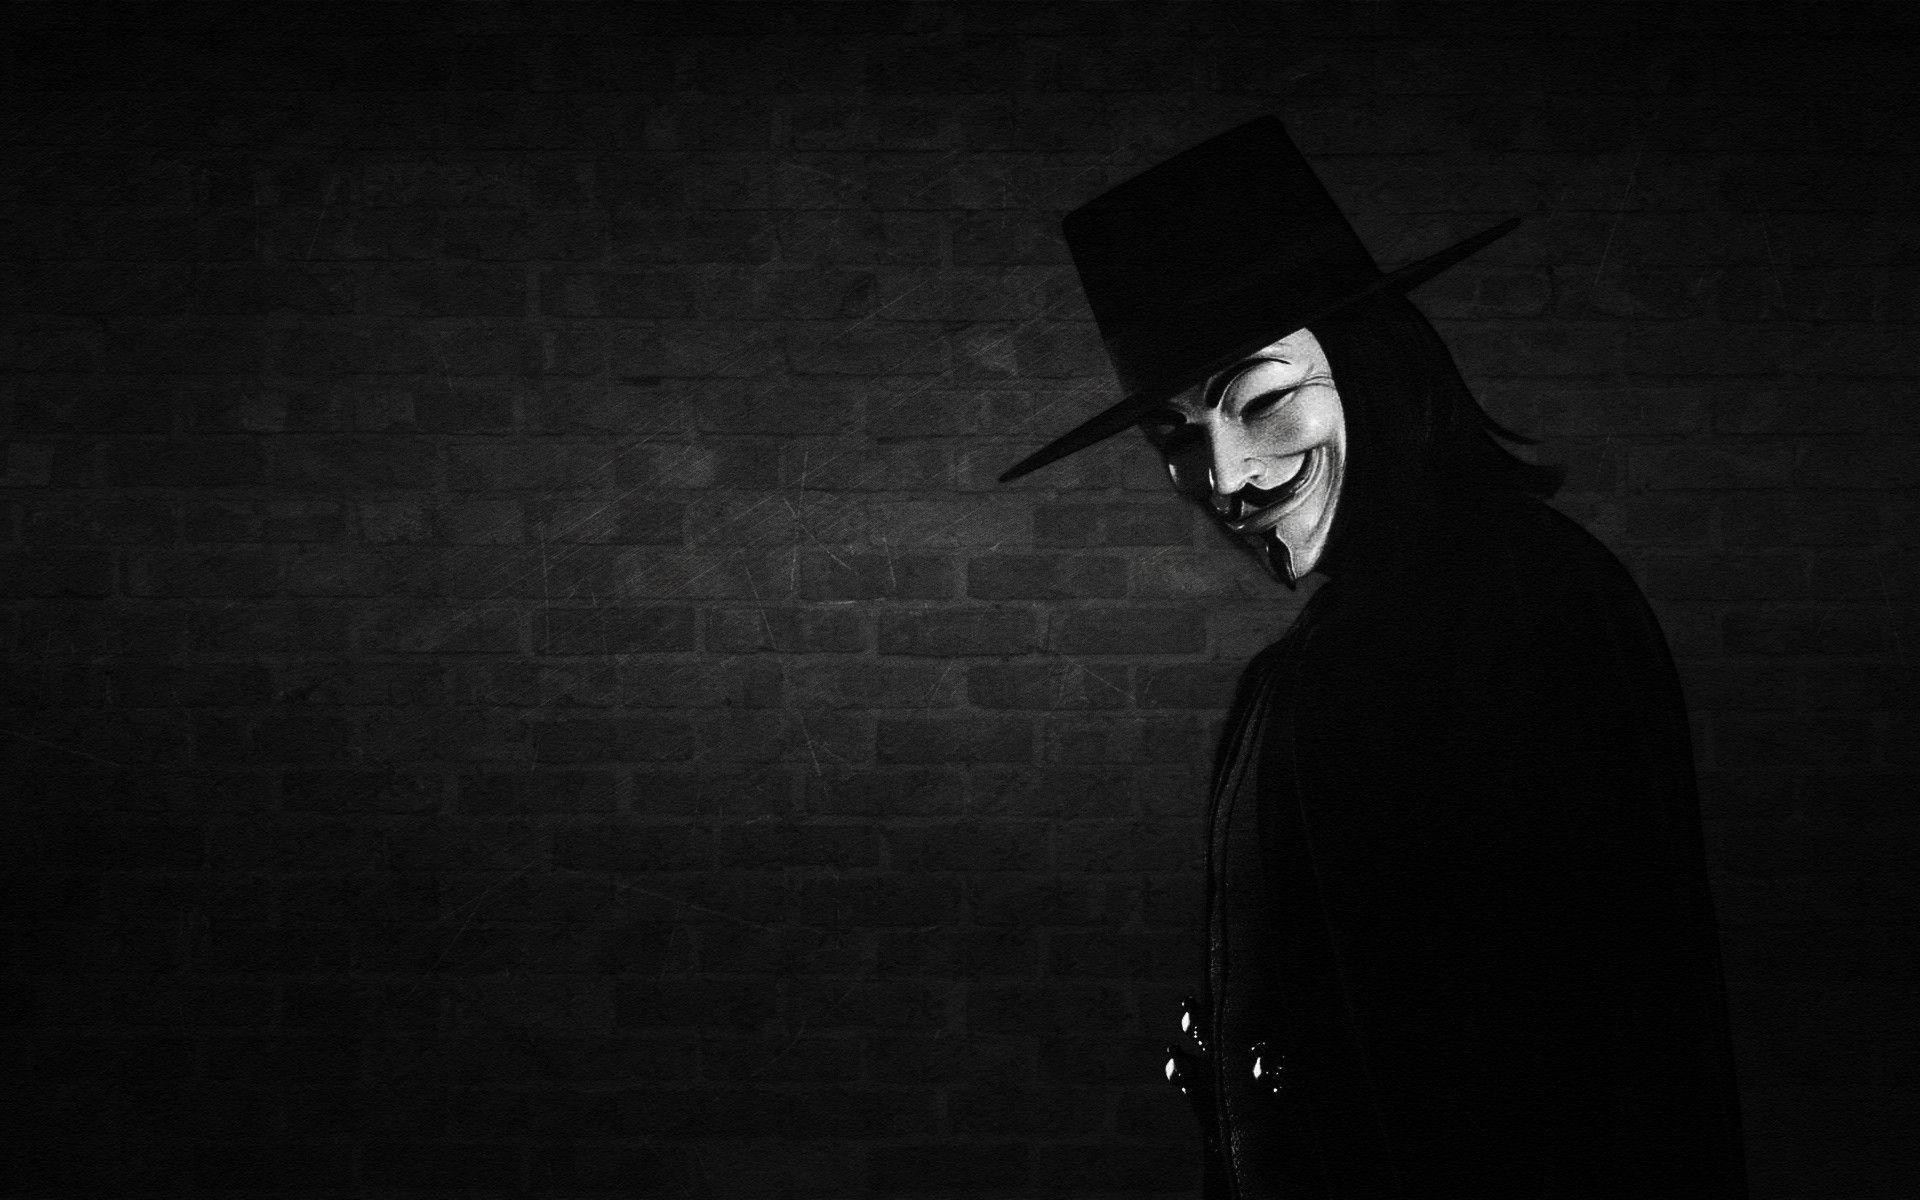 hat, wall, mask, V for vendetta wallpapers and images – wallpapers .